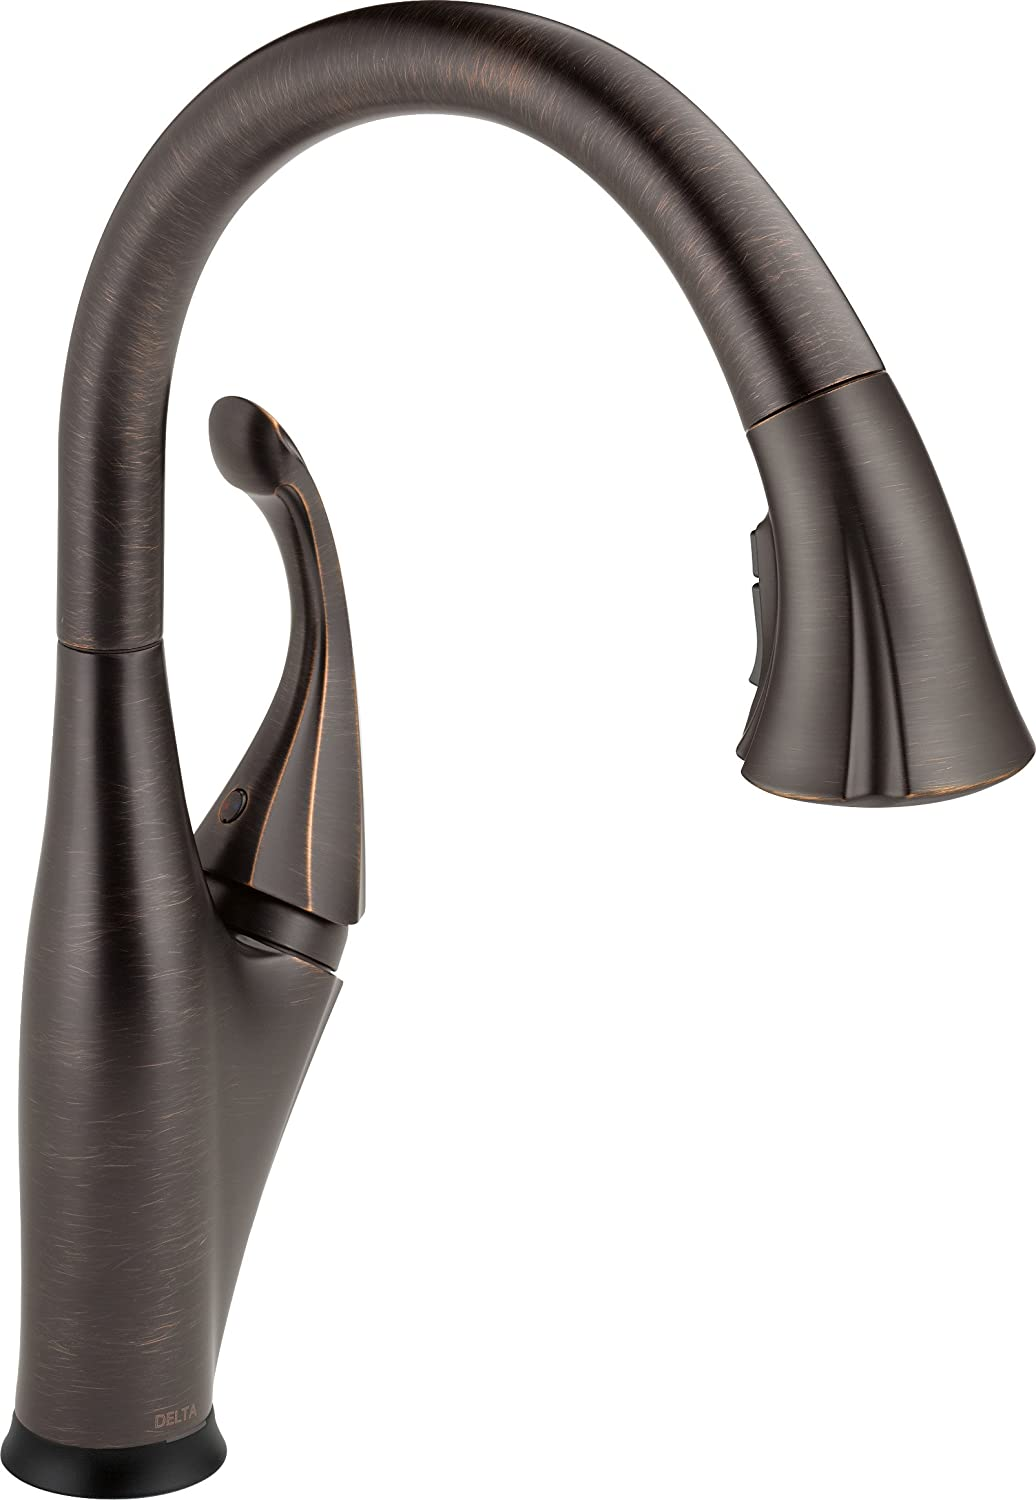 Delta Faucet Addison Single-Handle Touch Kitchen Sink Faucet with Pull Down Sprayer, Touch2O and ShieldSpray Technology, Magnetic Docking Spray Head, Venetian Bronze 9192T-RB-DST